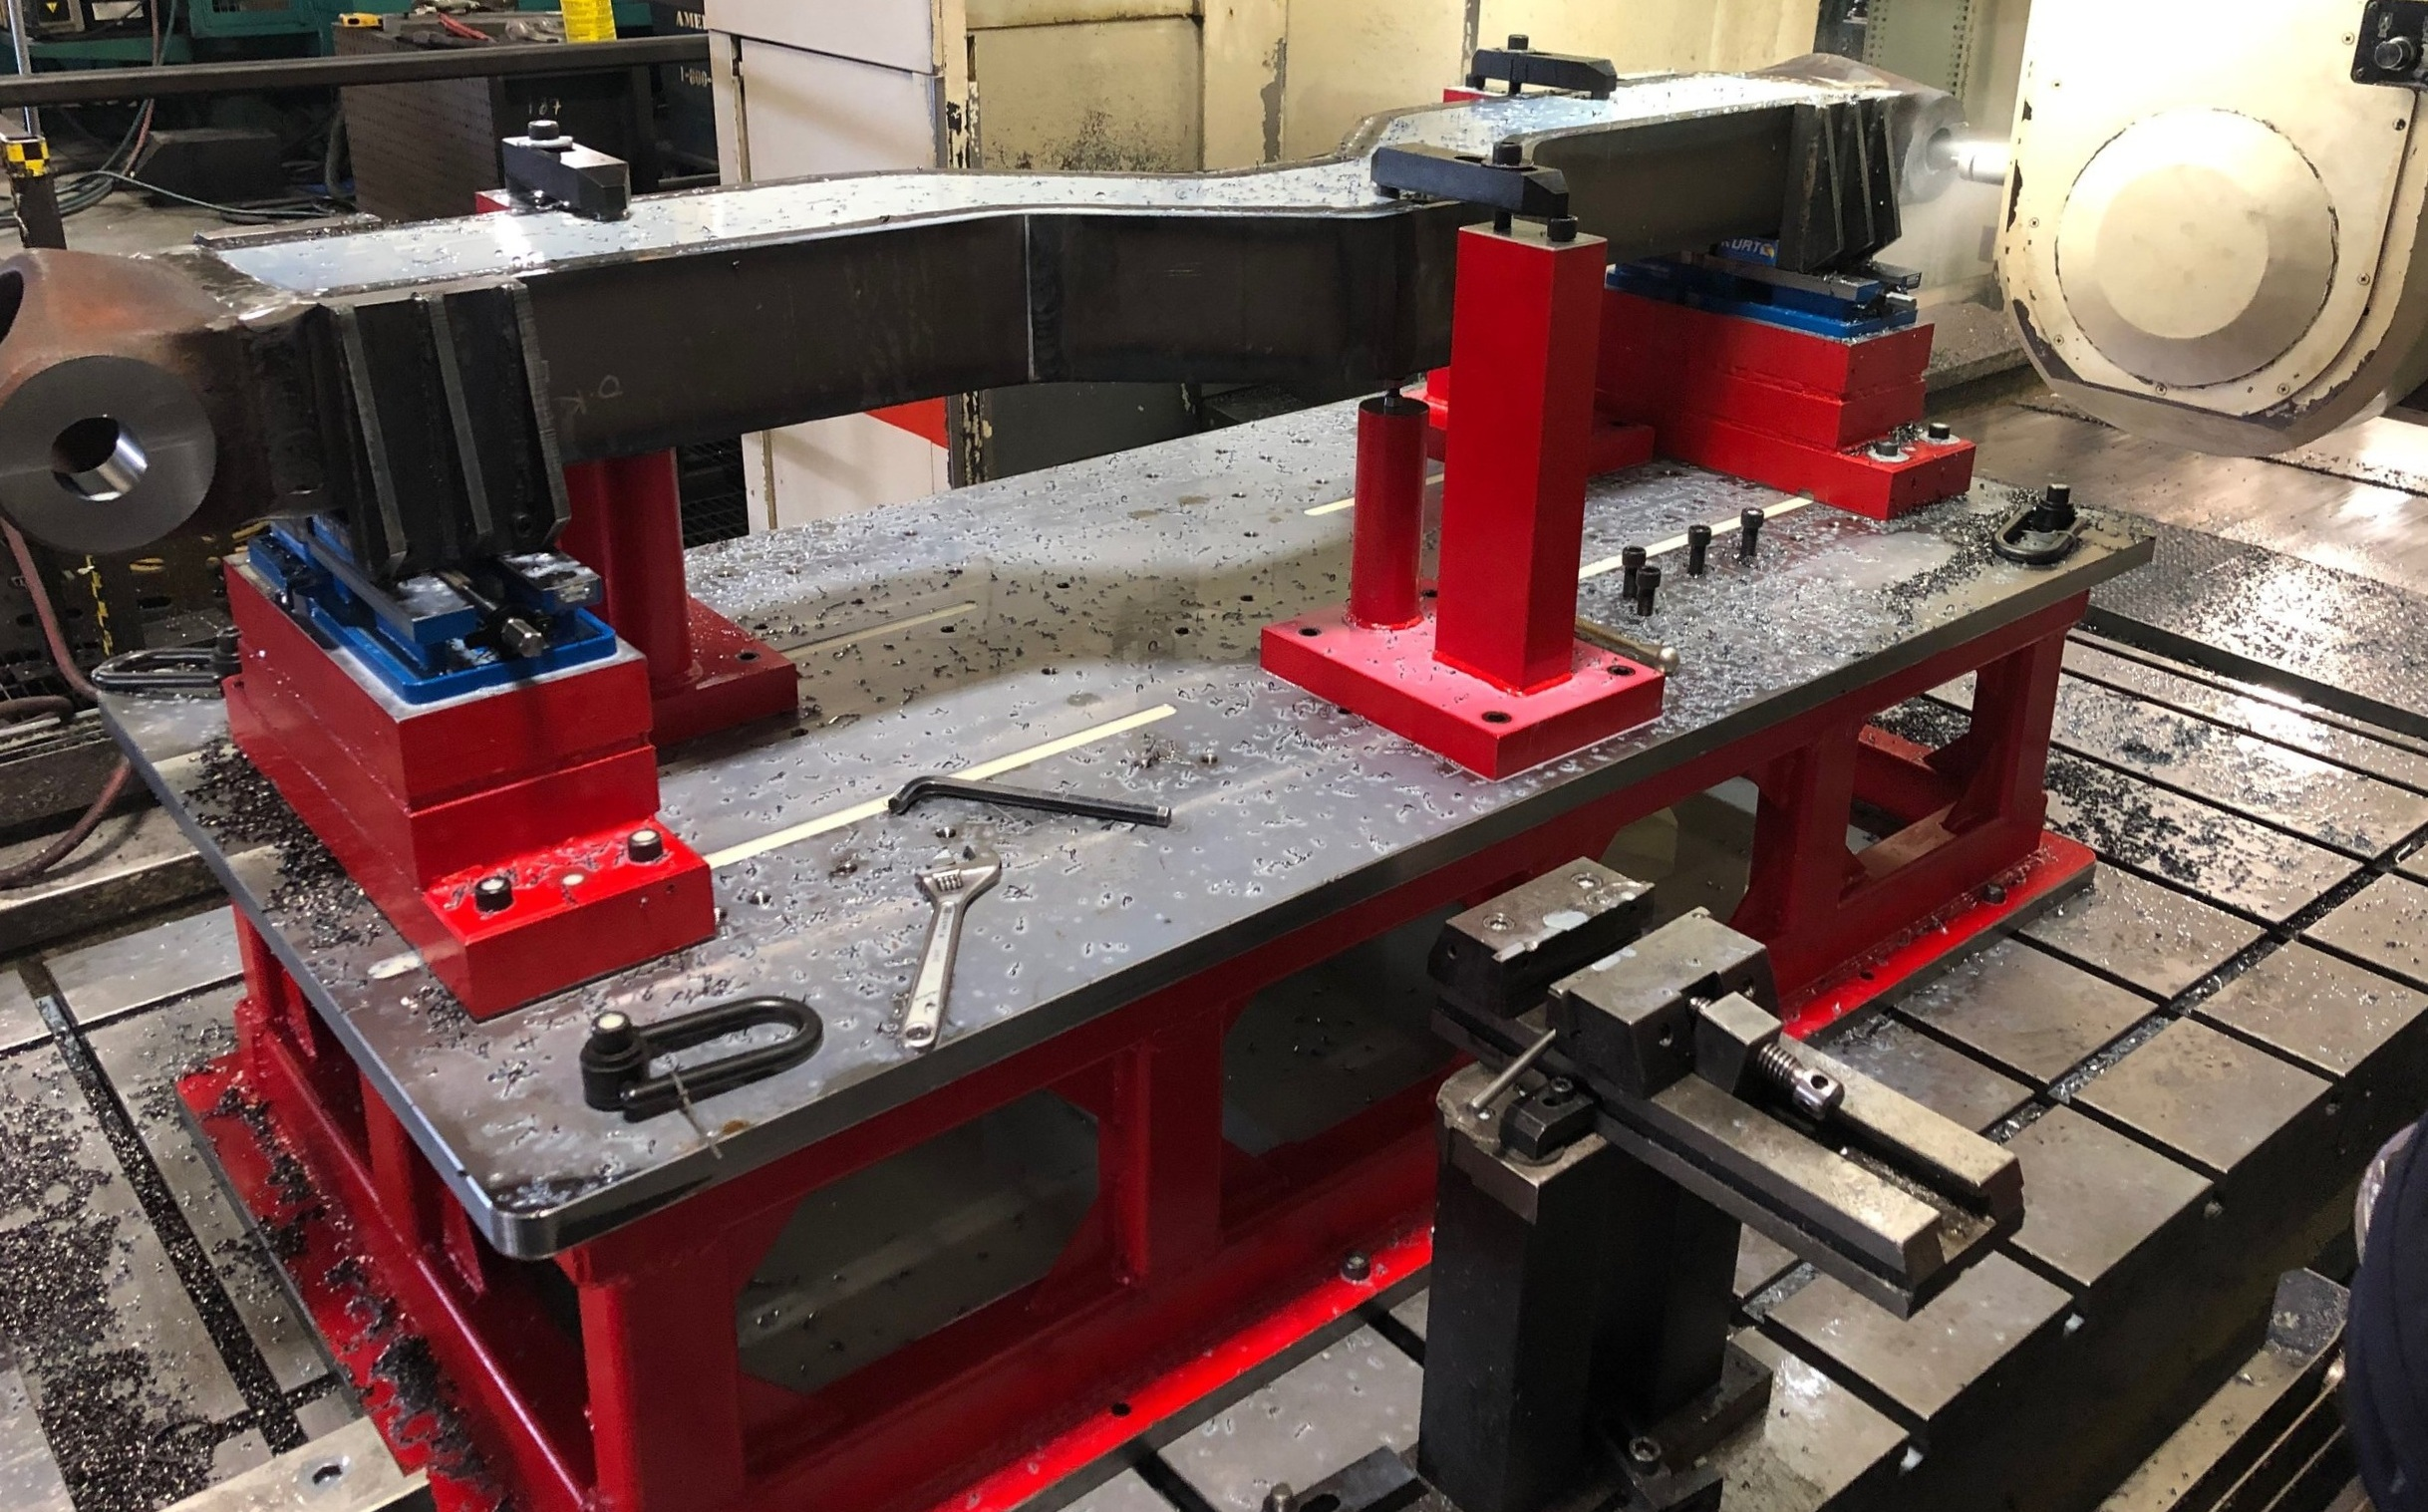 Fabricated and machined fixture being used on 5-axis CNC machine